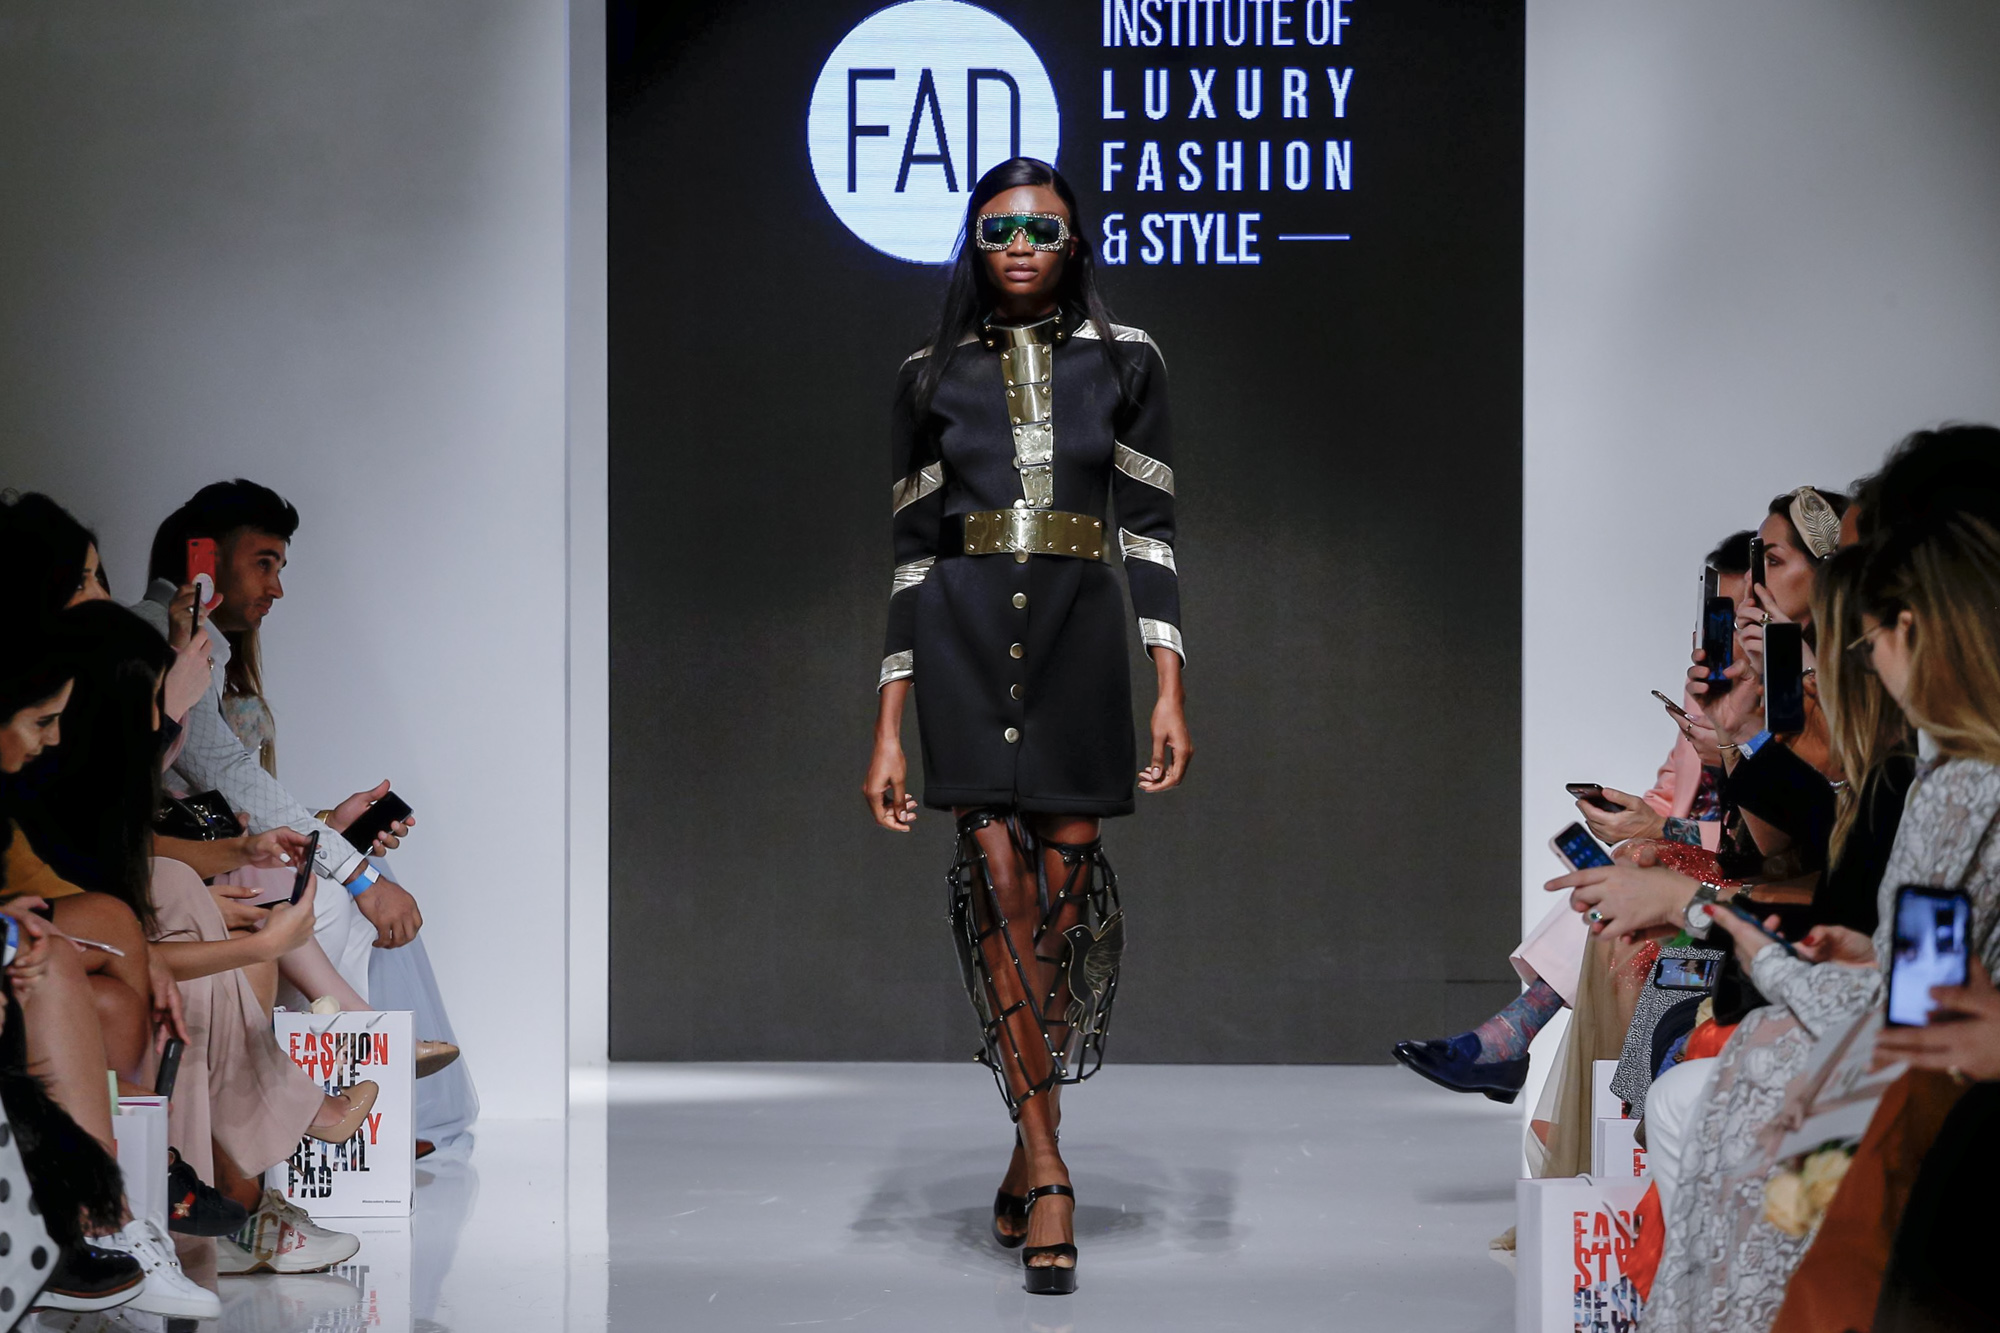 Fashion Design Courses Dubai Knowledge Village School Style